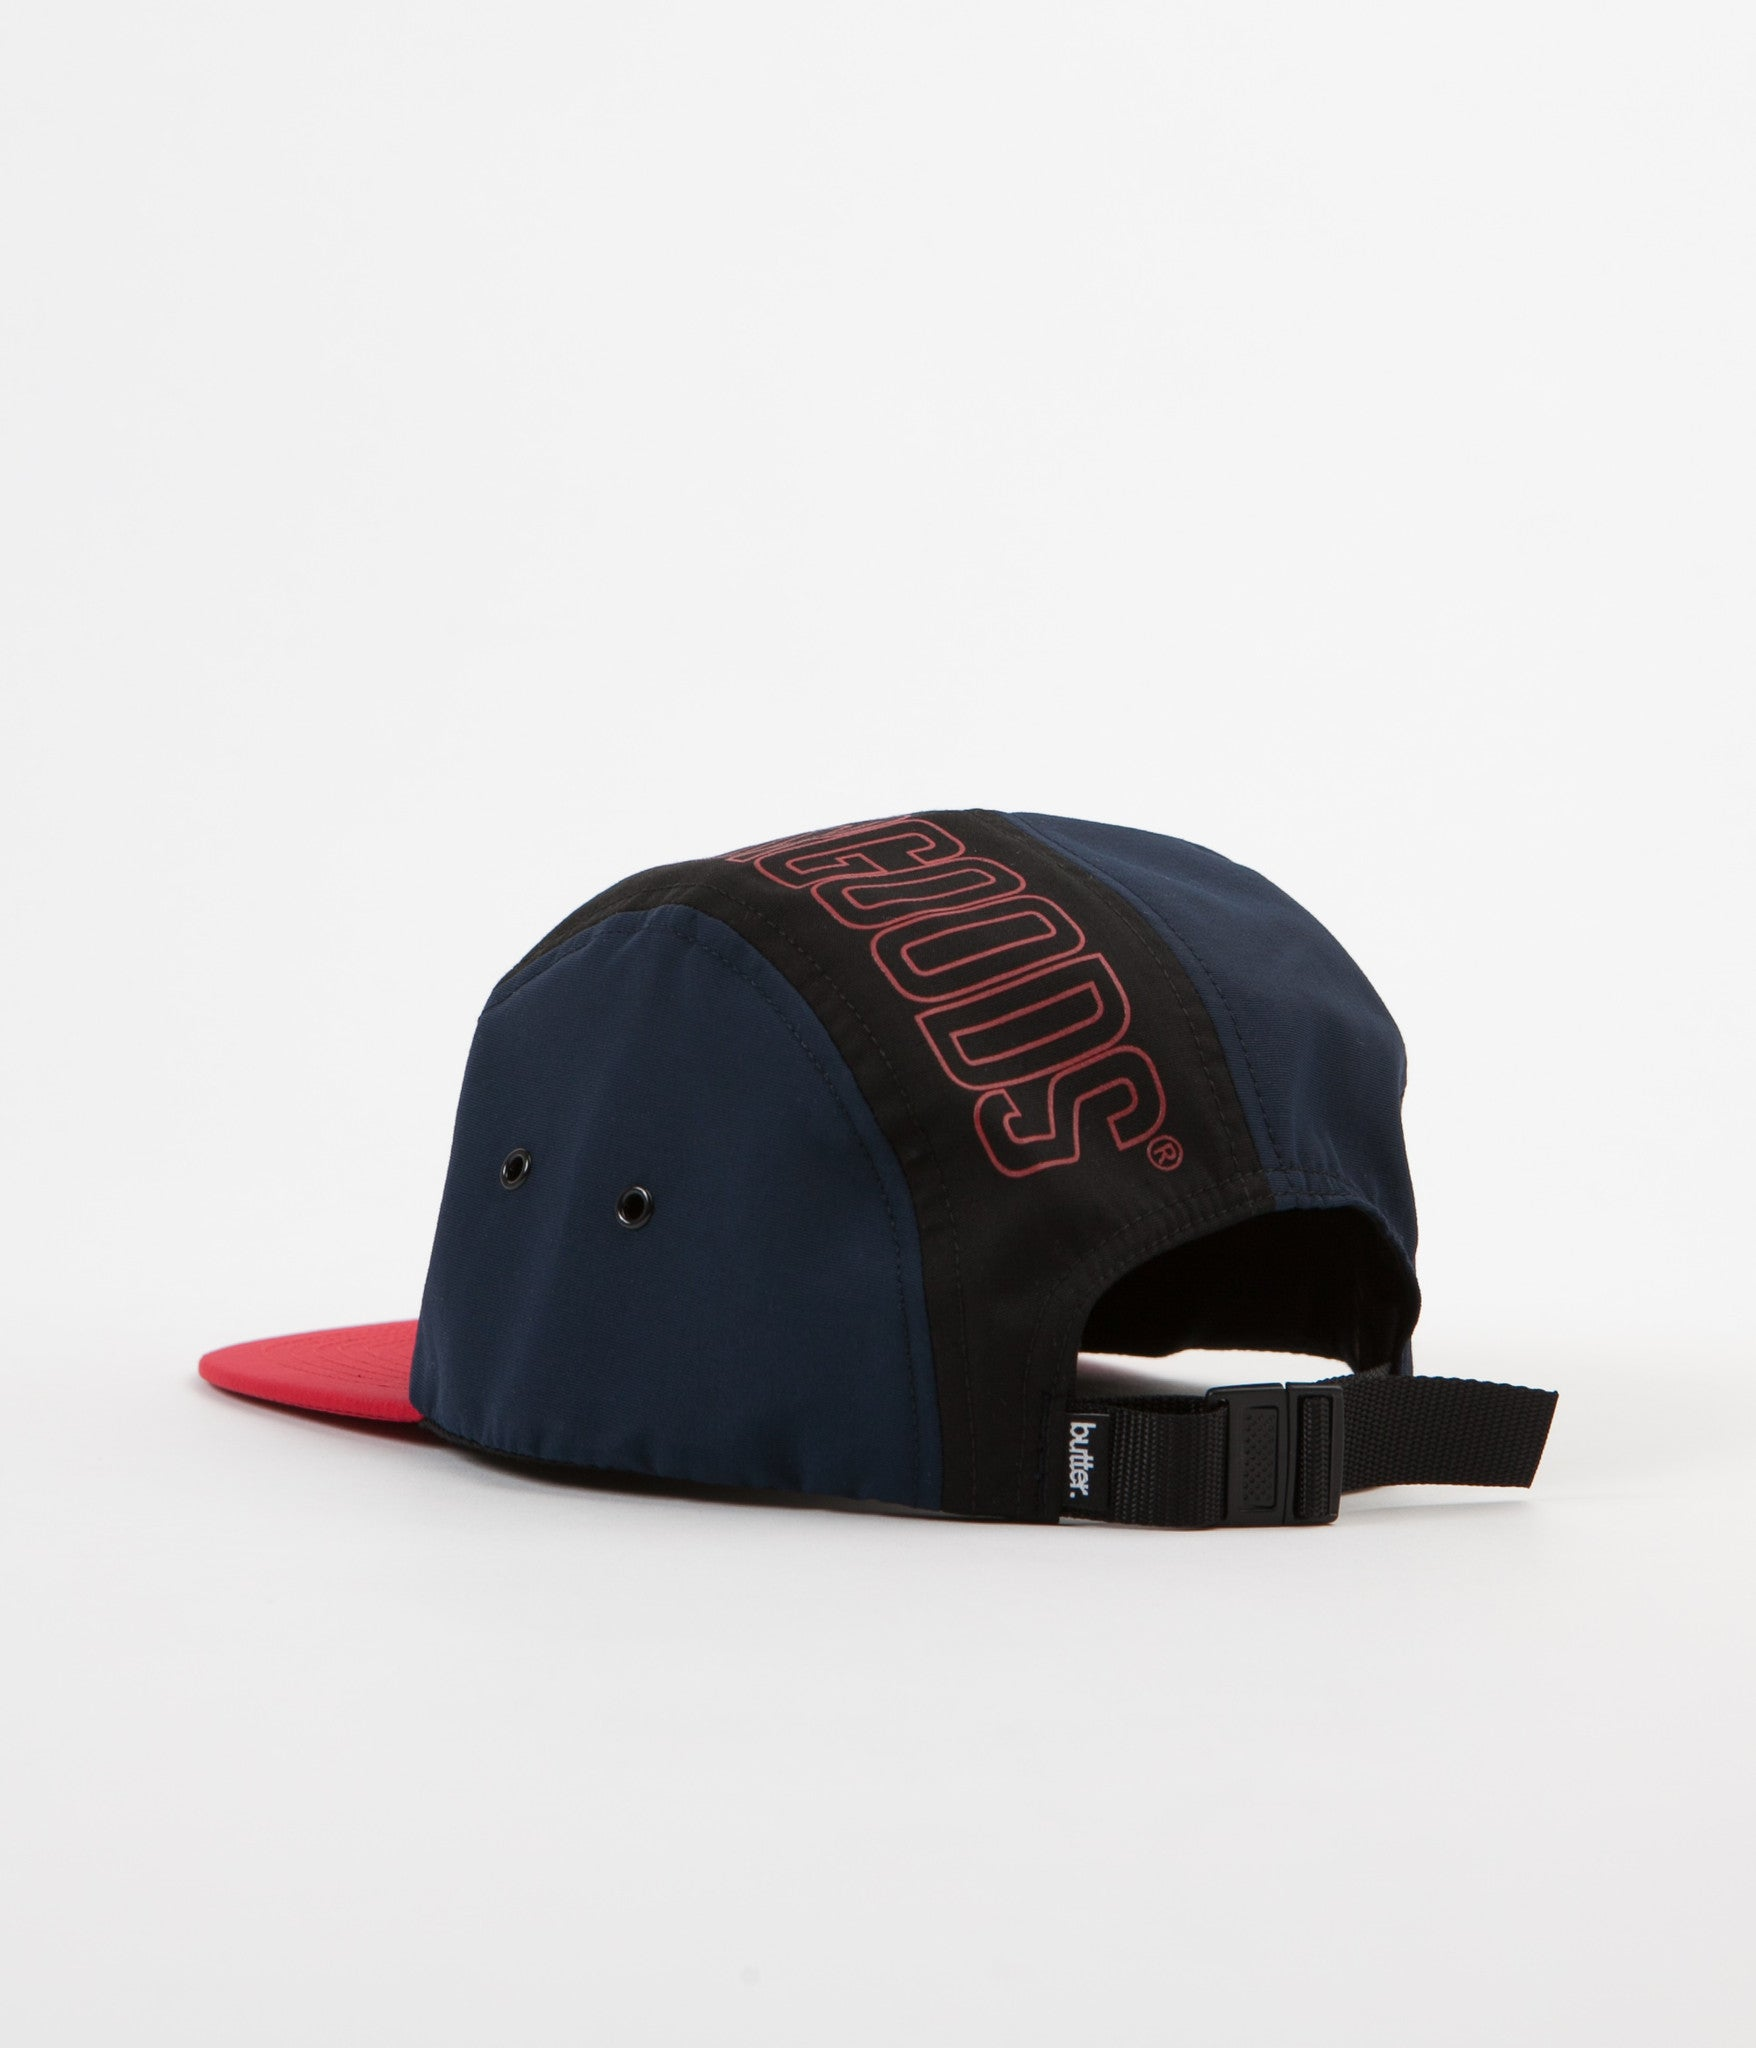 Butter Goods Outline 5 Panel Cap - Navy / Mango / Red